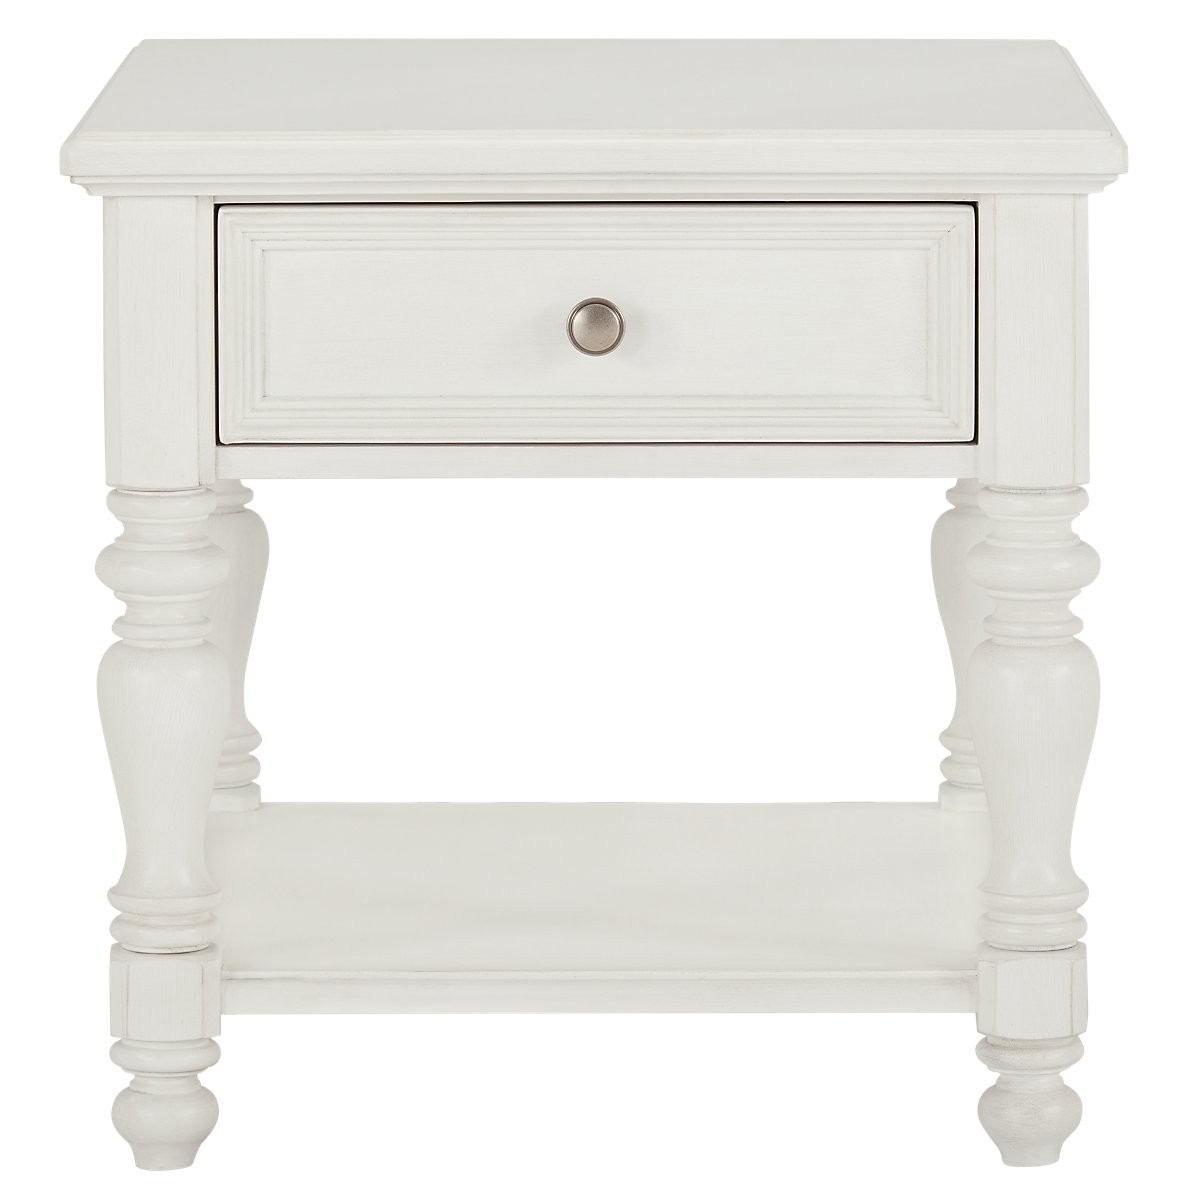 ivory end tables alert wyeth cream accent table round beige off city furniture savannah wid hei fmt qlt sharpen resmode usm iccembed white under cabinet lighting mitchell high